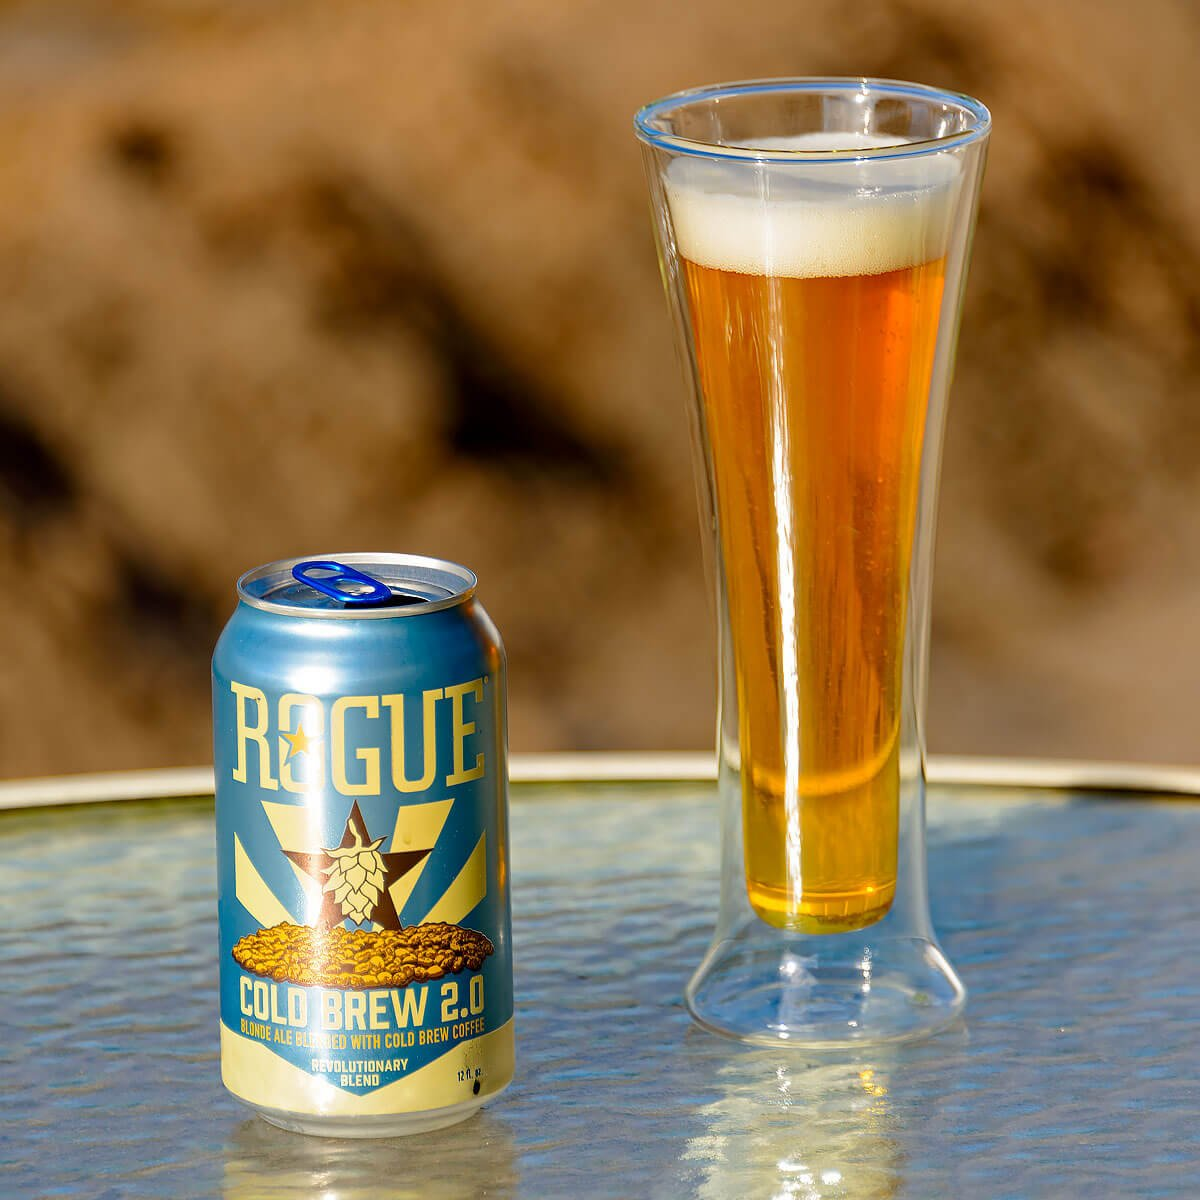 Cold Brew 2.0, an American Blonde Ale brewed by Rogue Ales